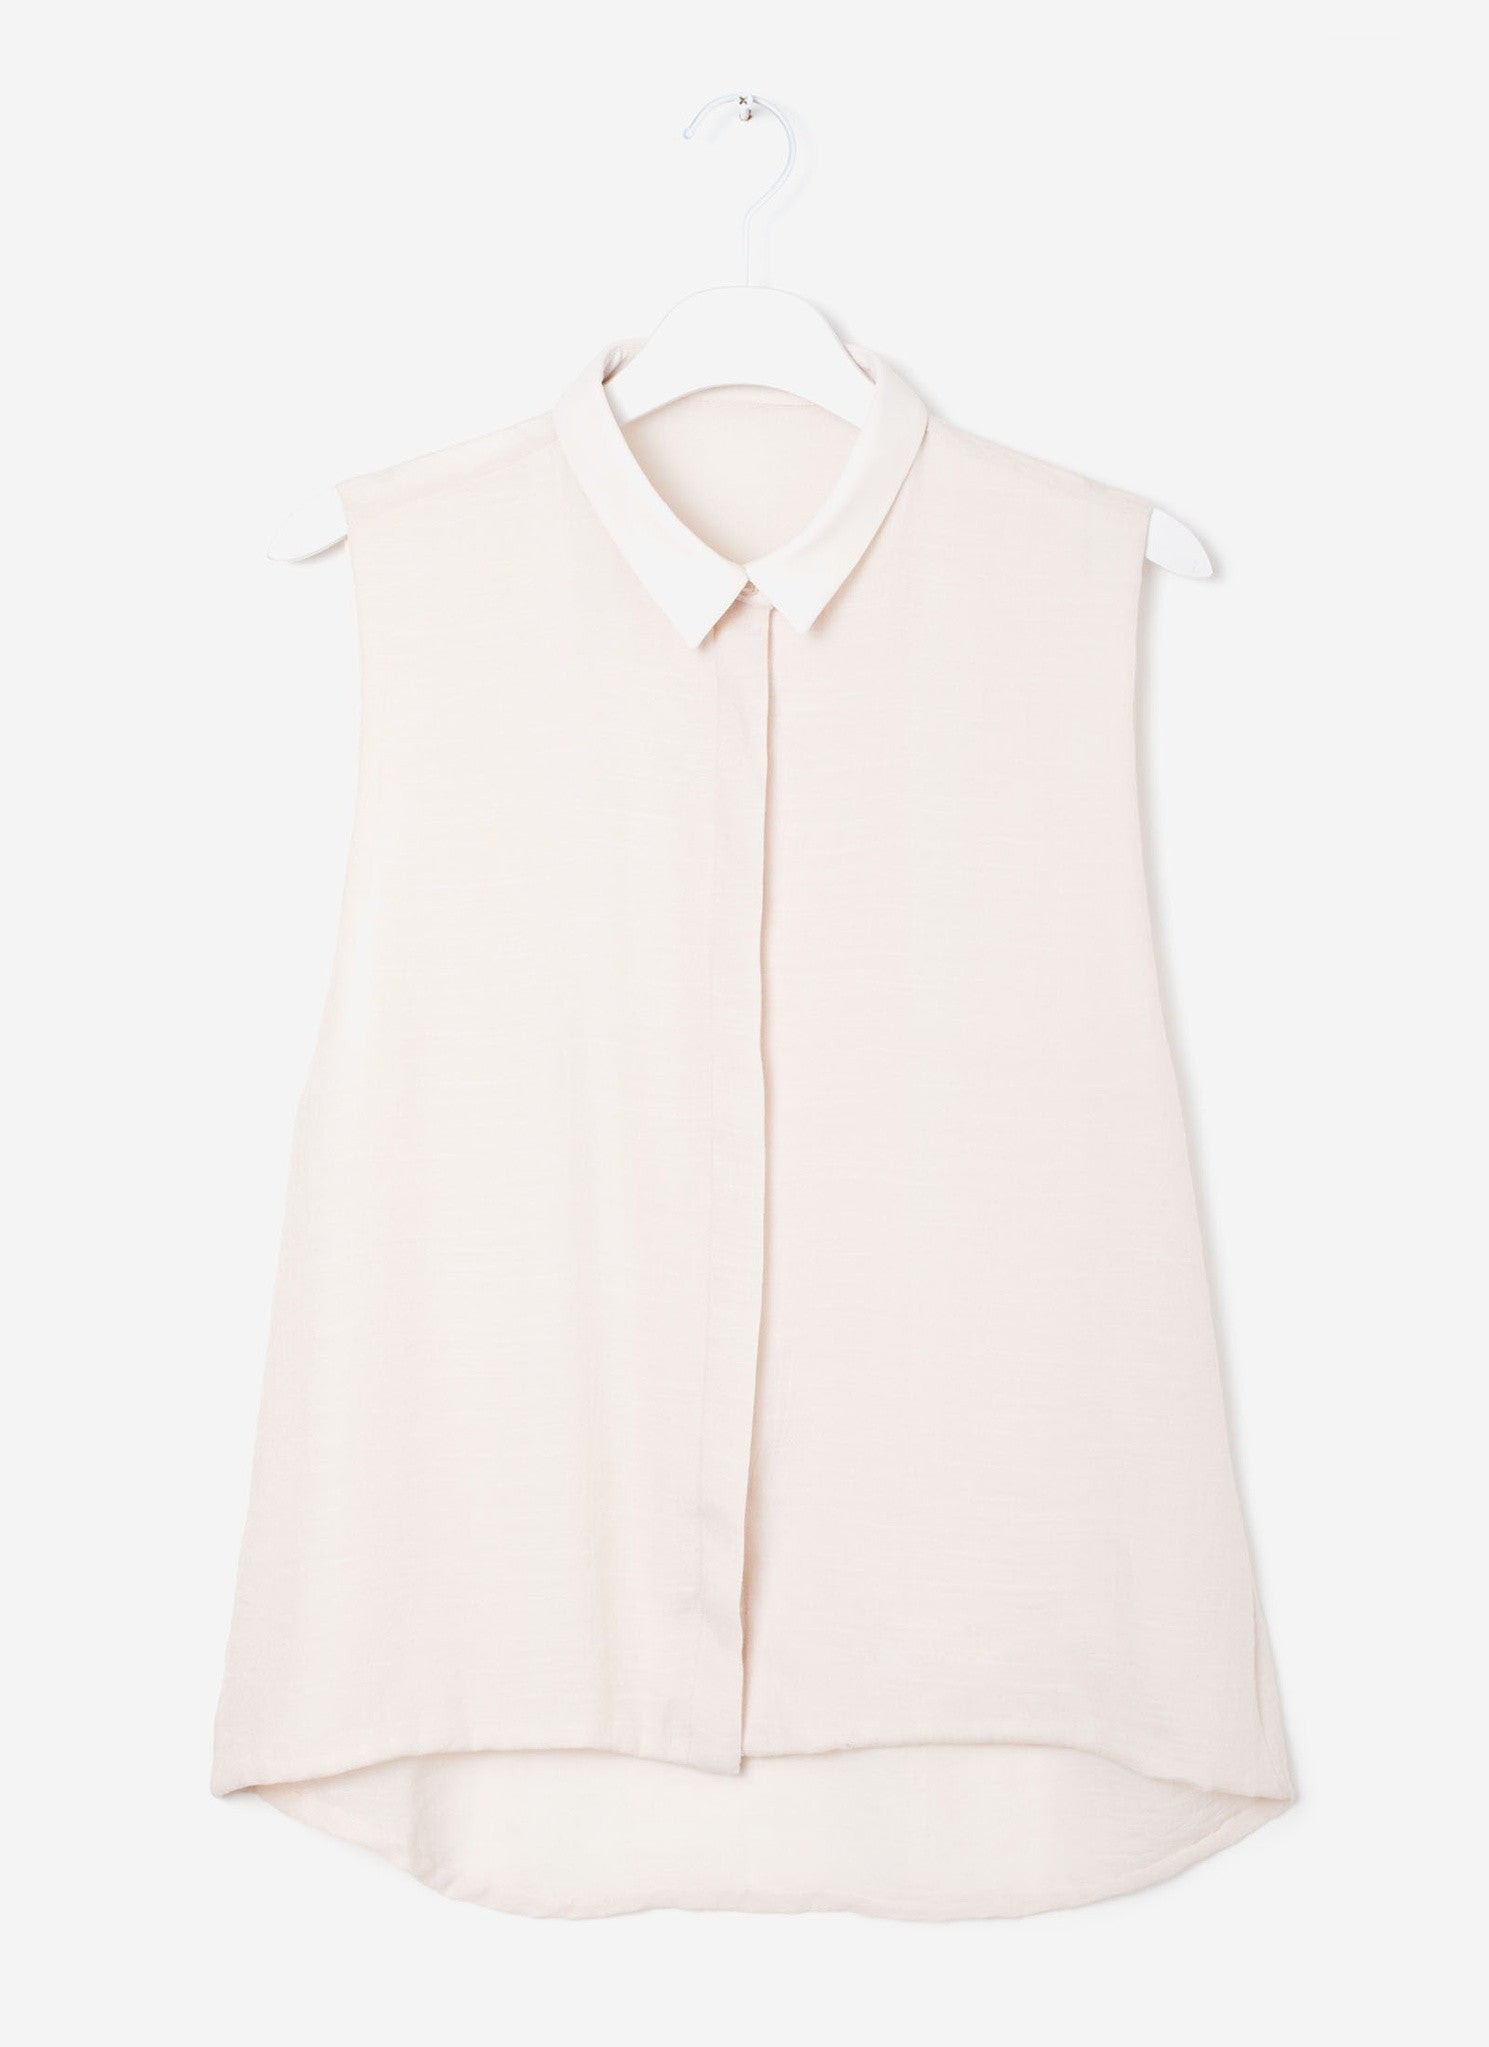 KAAREM - Cream Tea Sleeveless Button-Down Shirt